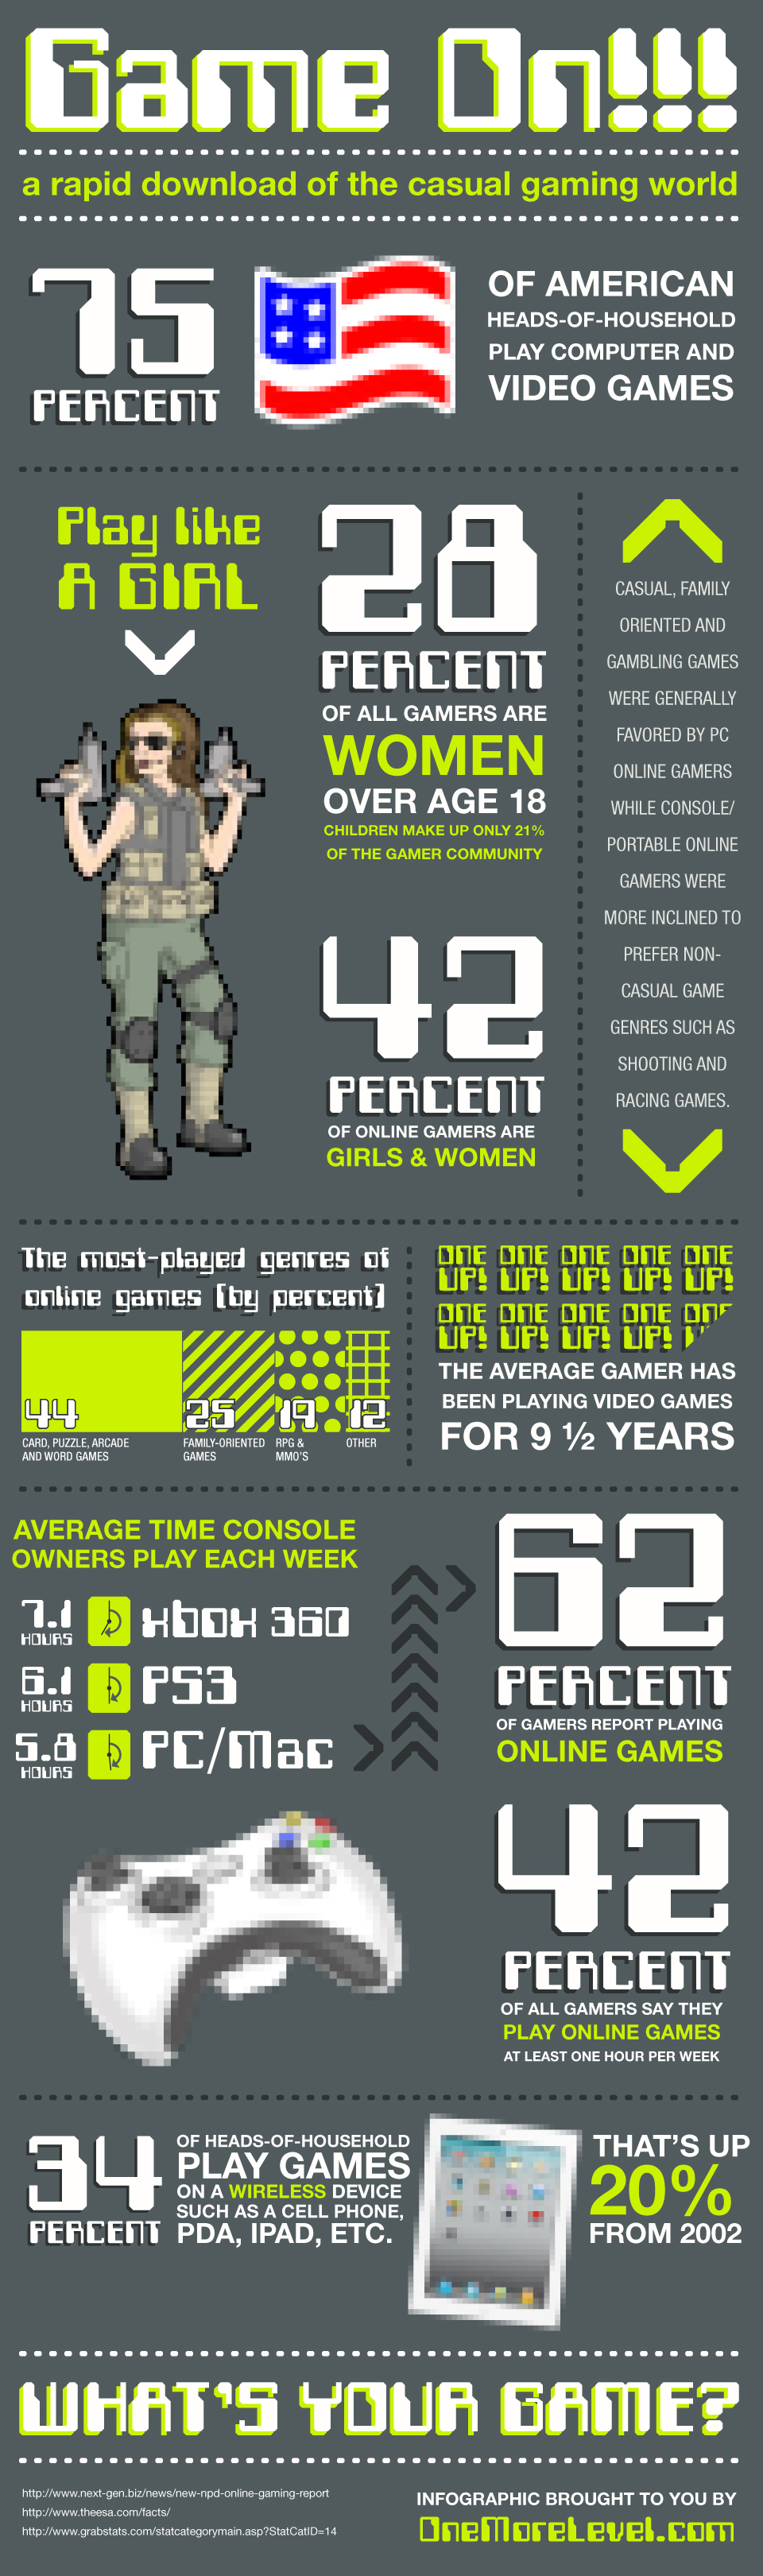 Country of gamers infographic